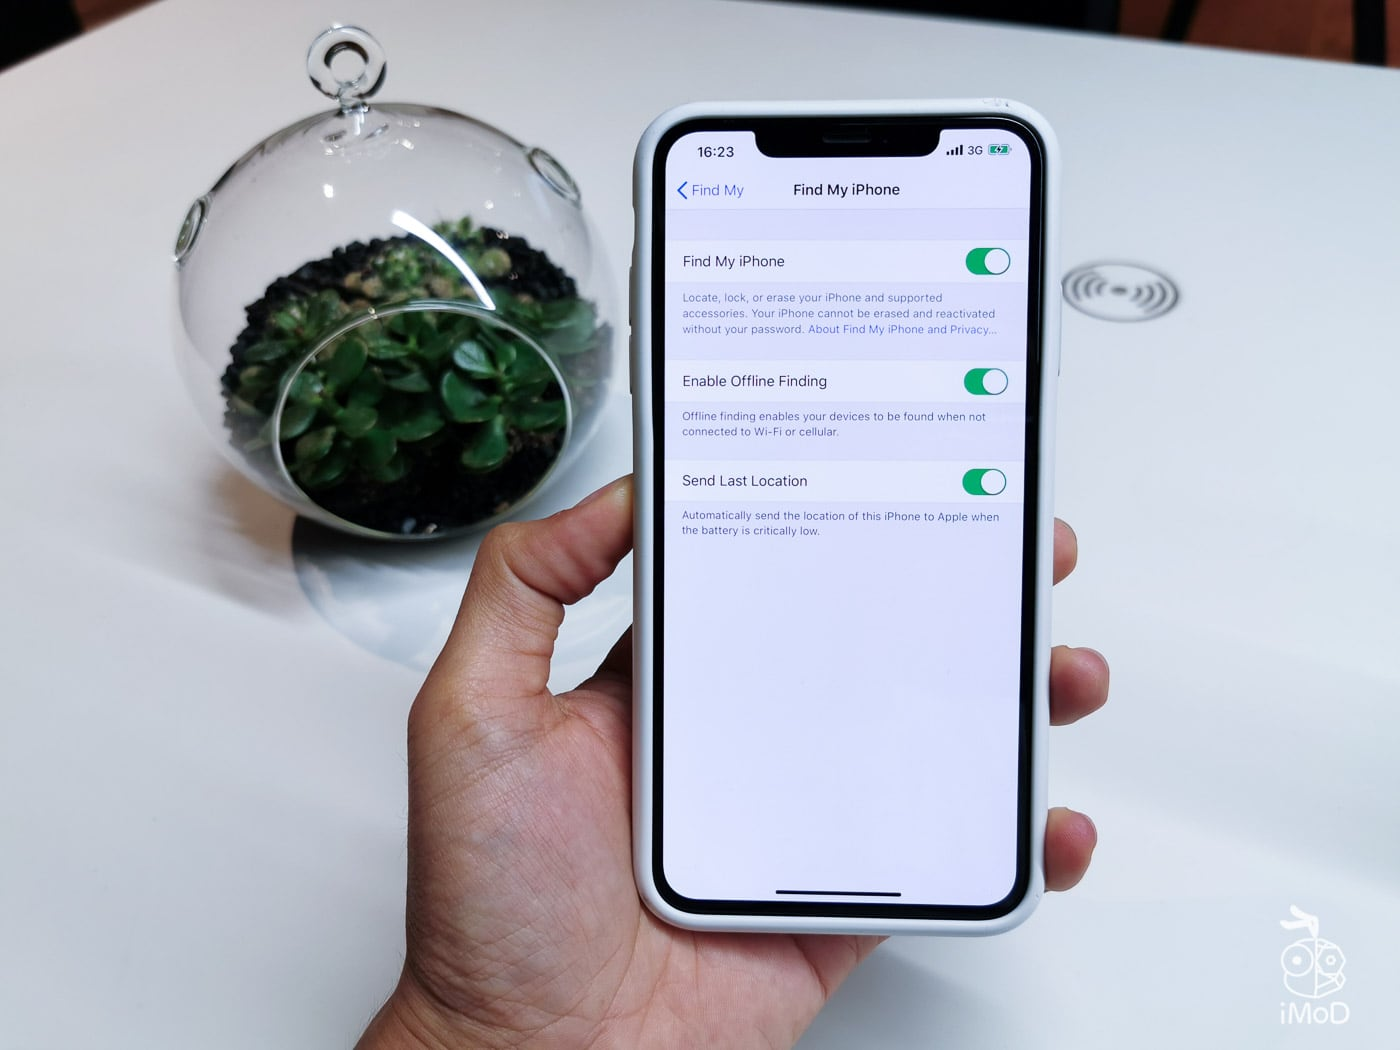 Offline Finding Ios13 Preview 162207